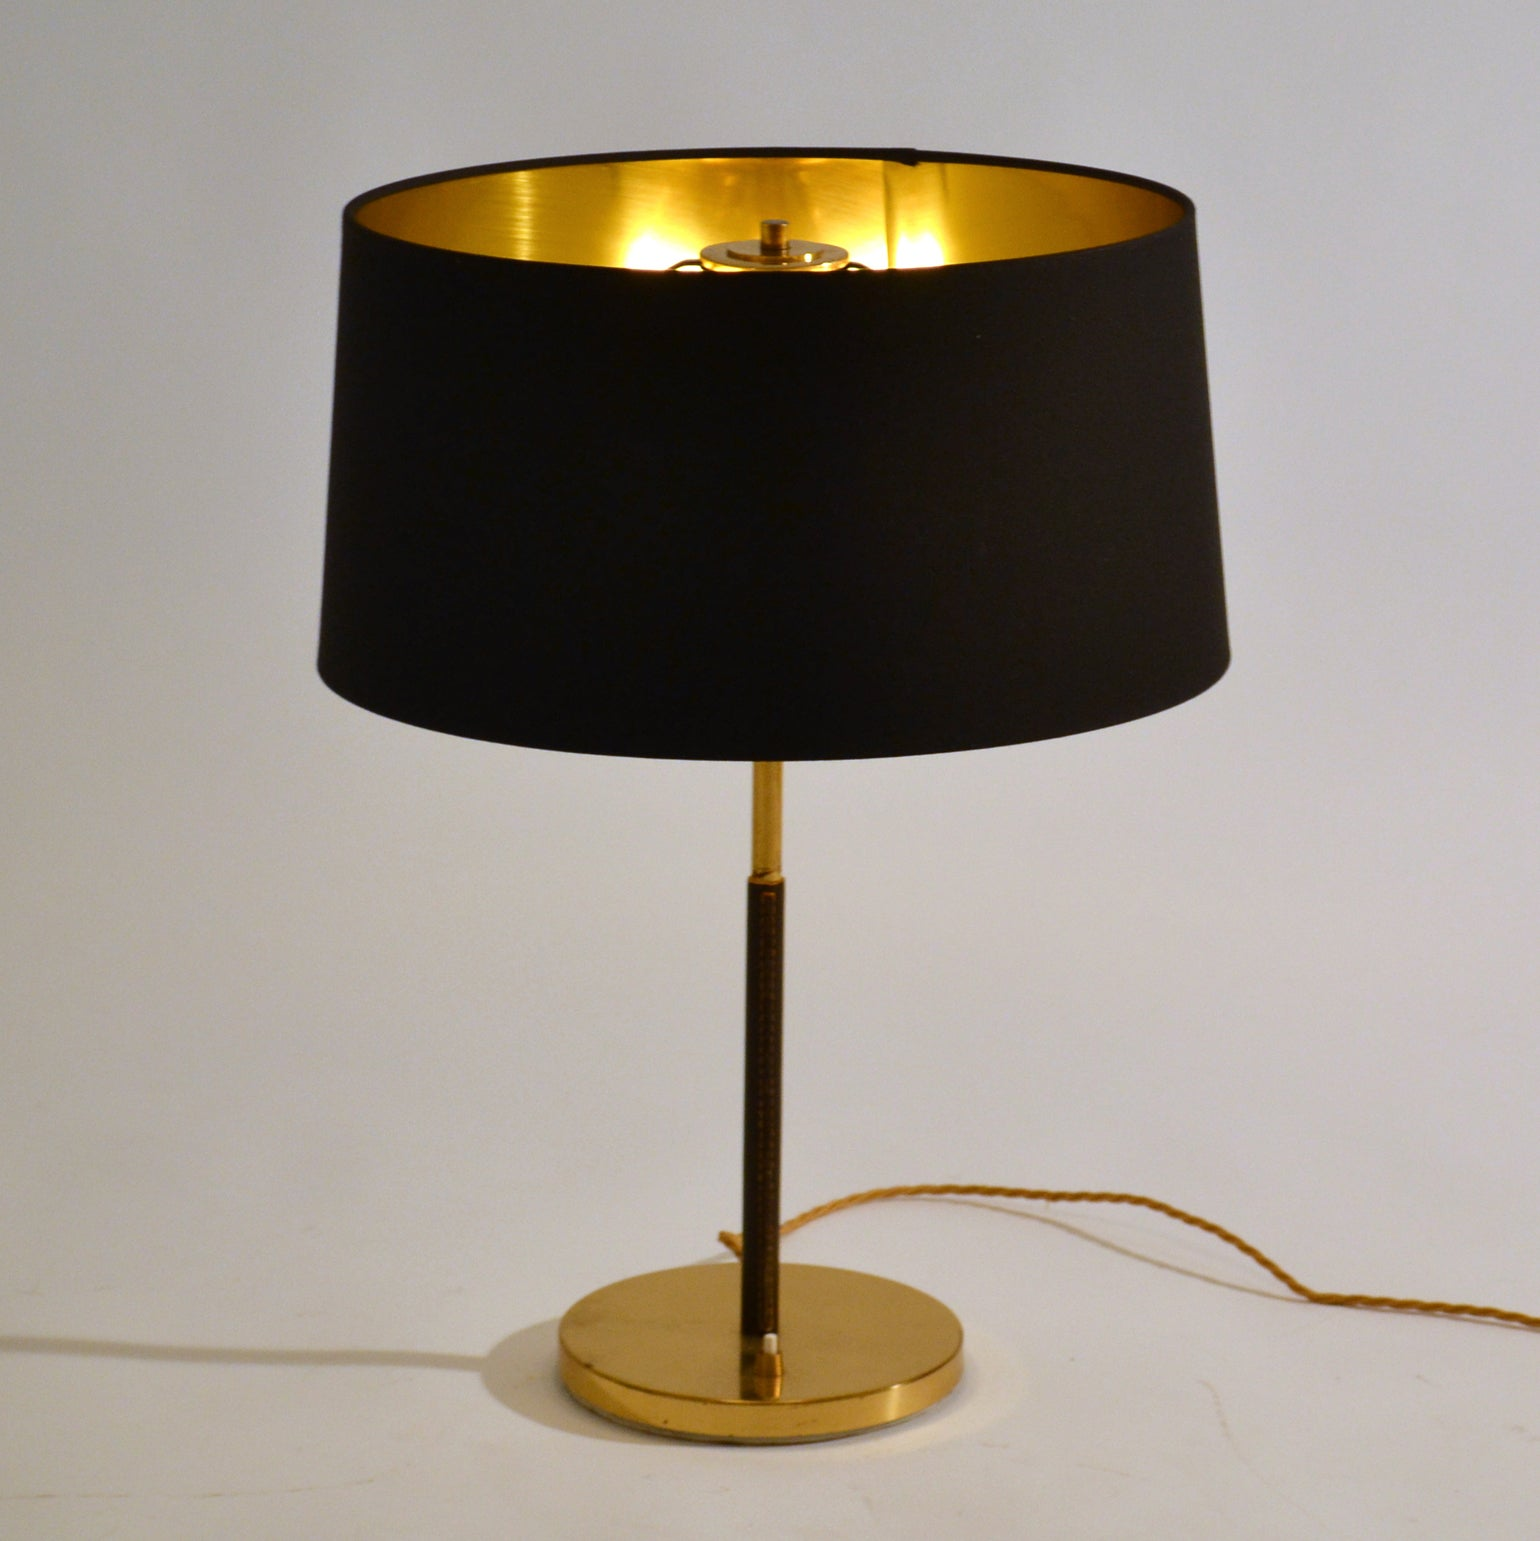 1950s Pair Of Minimal Black And Gold Table Lamps By Kalmar